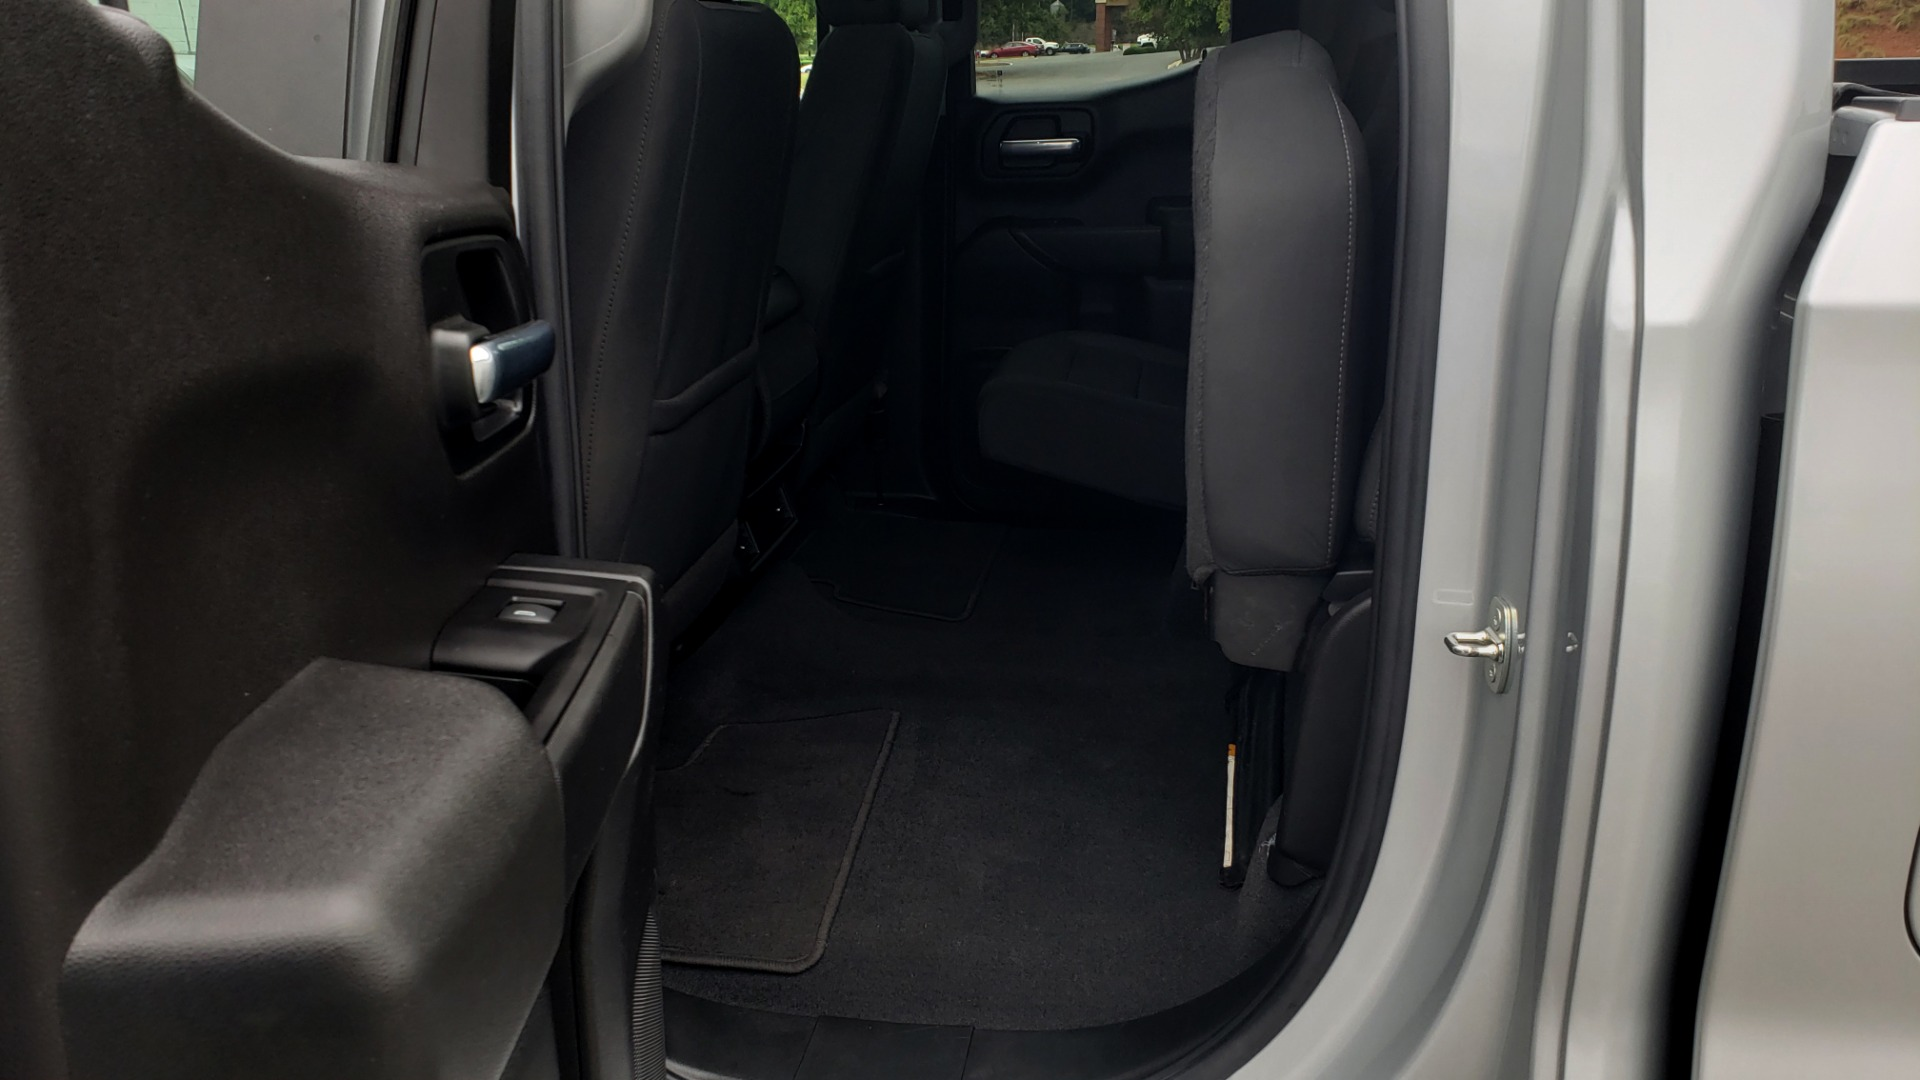 Used 2020 Chevrolet SILVERADO 1500 LT 4WD DOUBLECAB 147 WB / 5.3L V8 / BEDLINER / REARVIEW for sale $41,995 at Formula Imports in Charlotte NC 28227 56